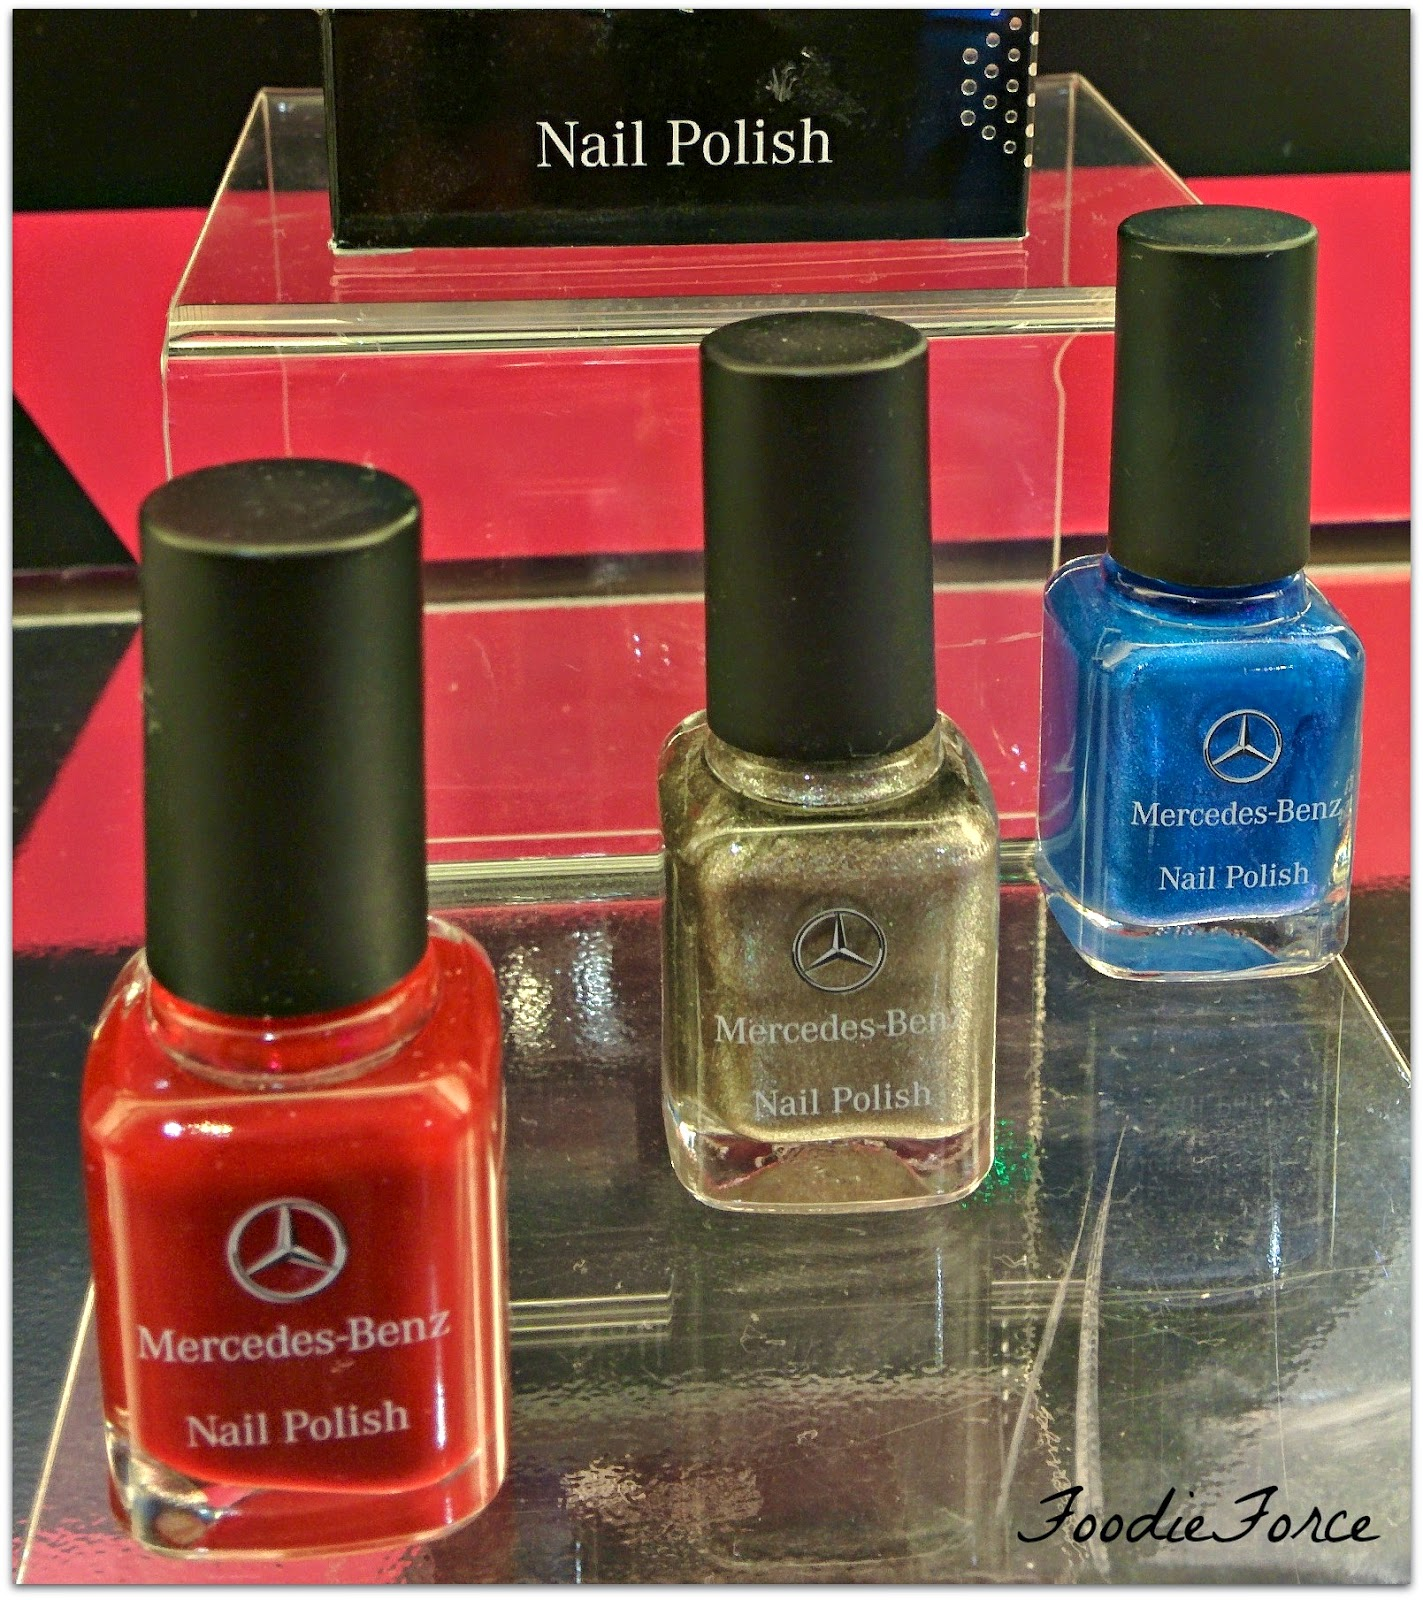 Mercedes Benz nail varnish